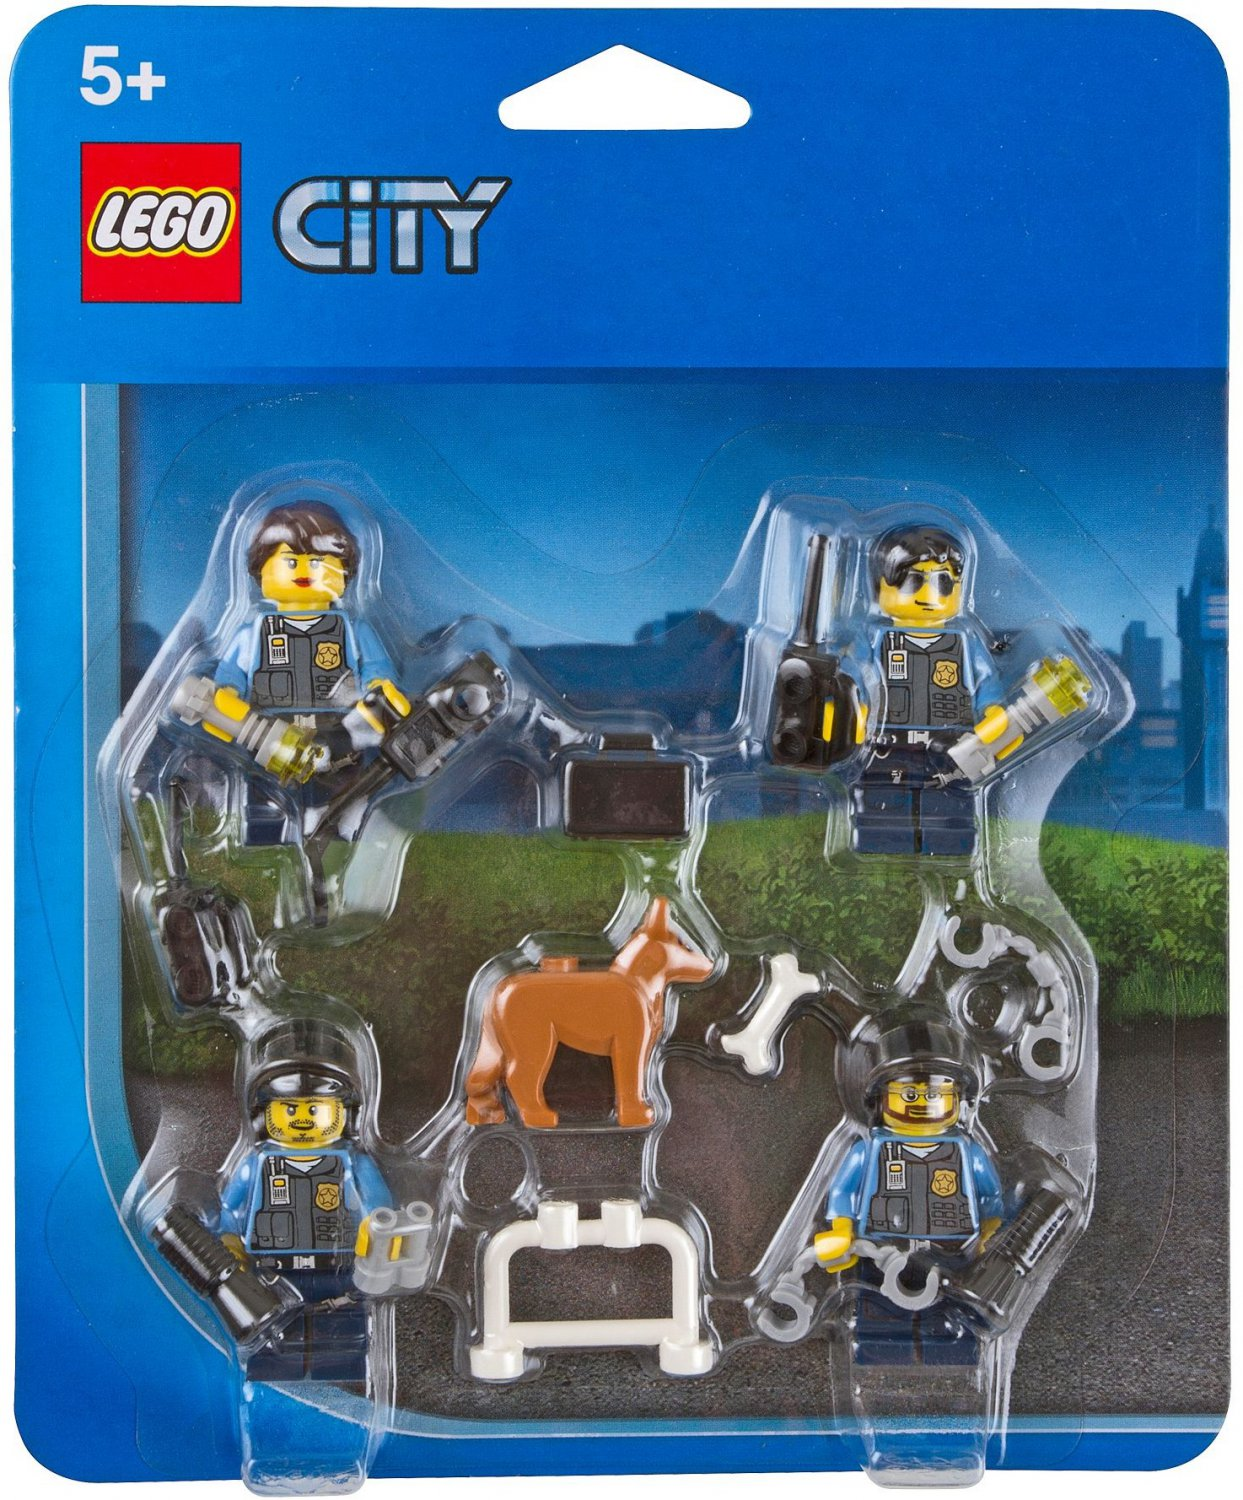 Lego City Police Accessory Pack 850617 (2013) New set on Blister Pack!